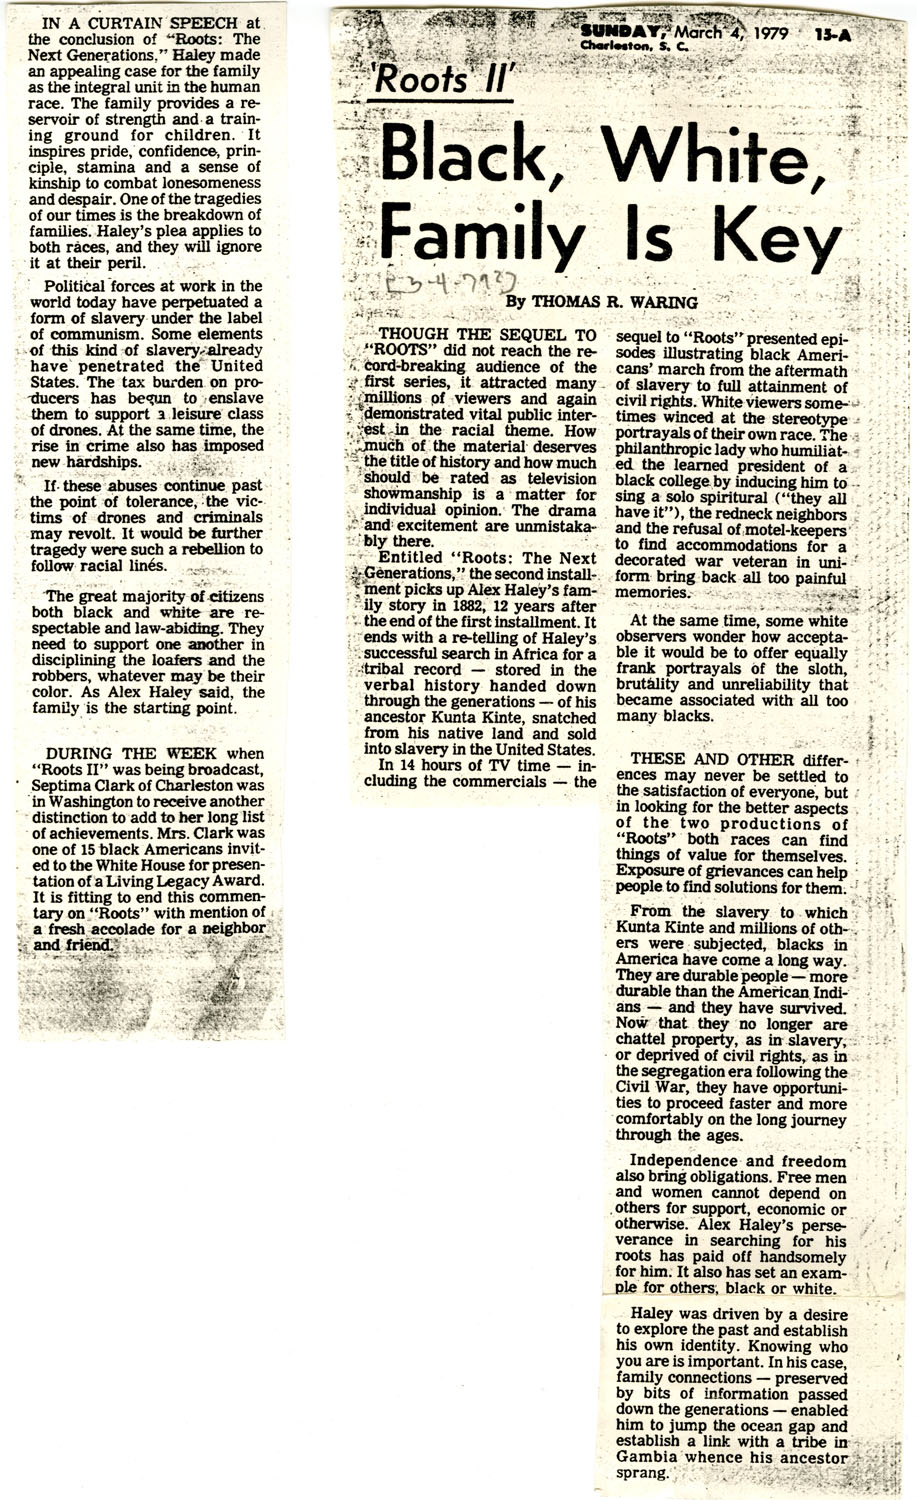 Newspaper Article, March 4, 1979